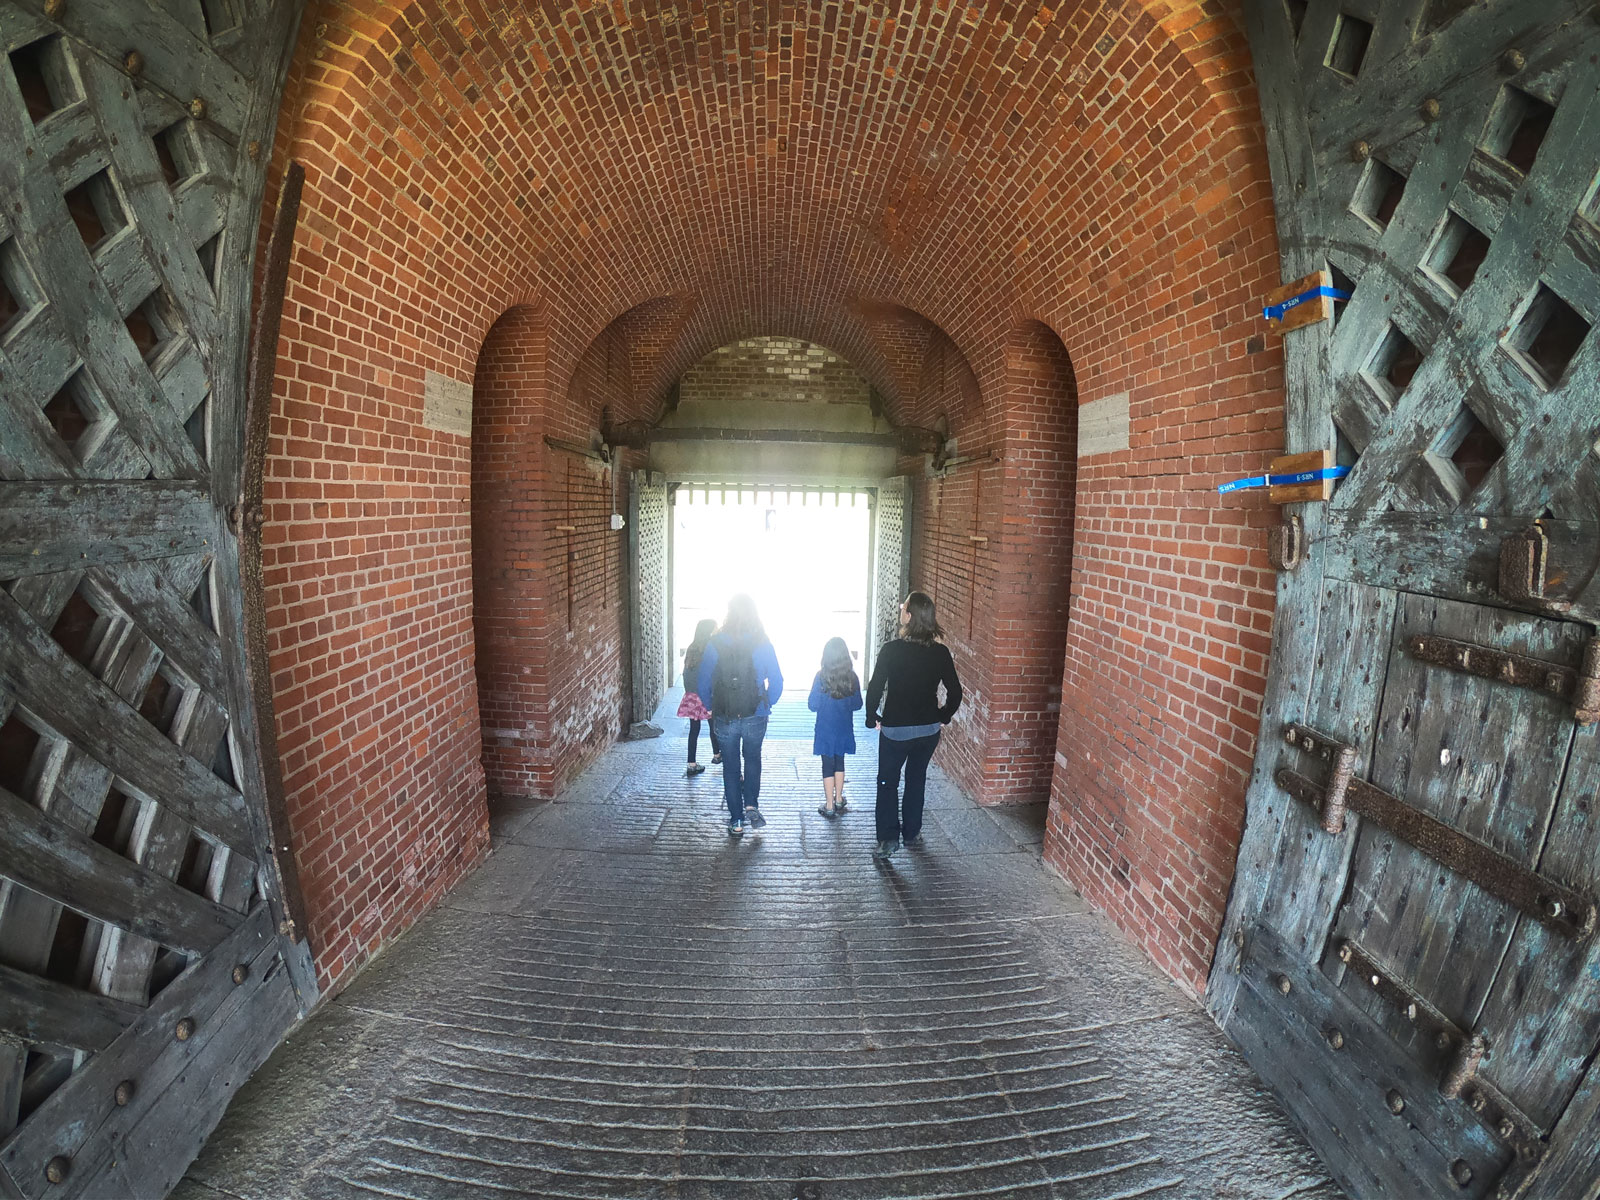 Four people walking through bricked archway entrance to Fort Pulaski National Monument, Georgia